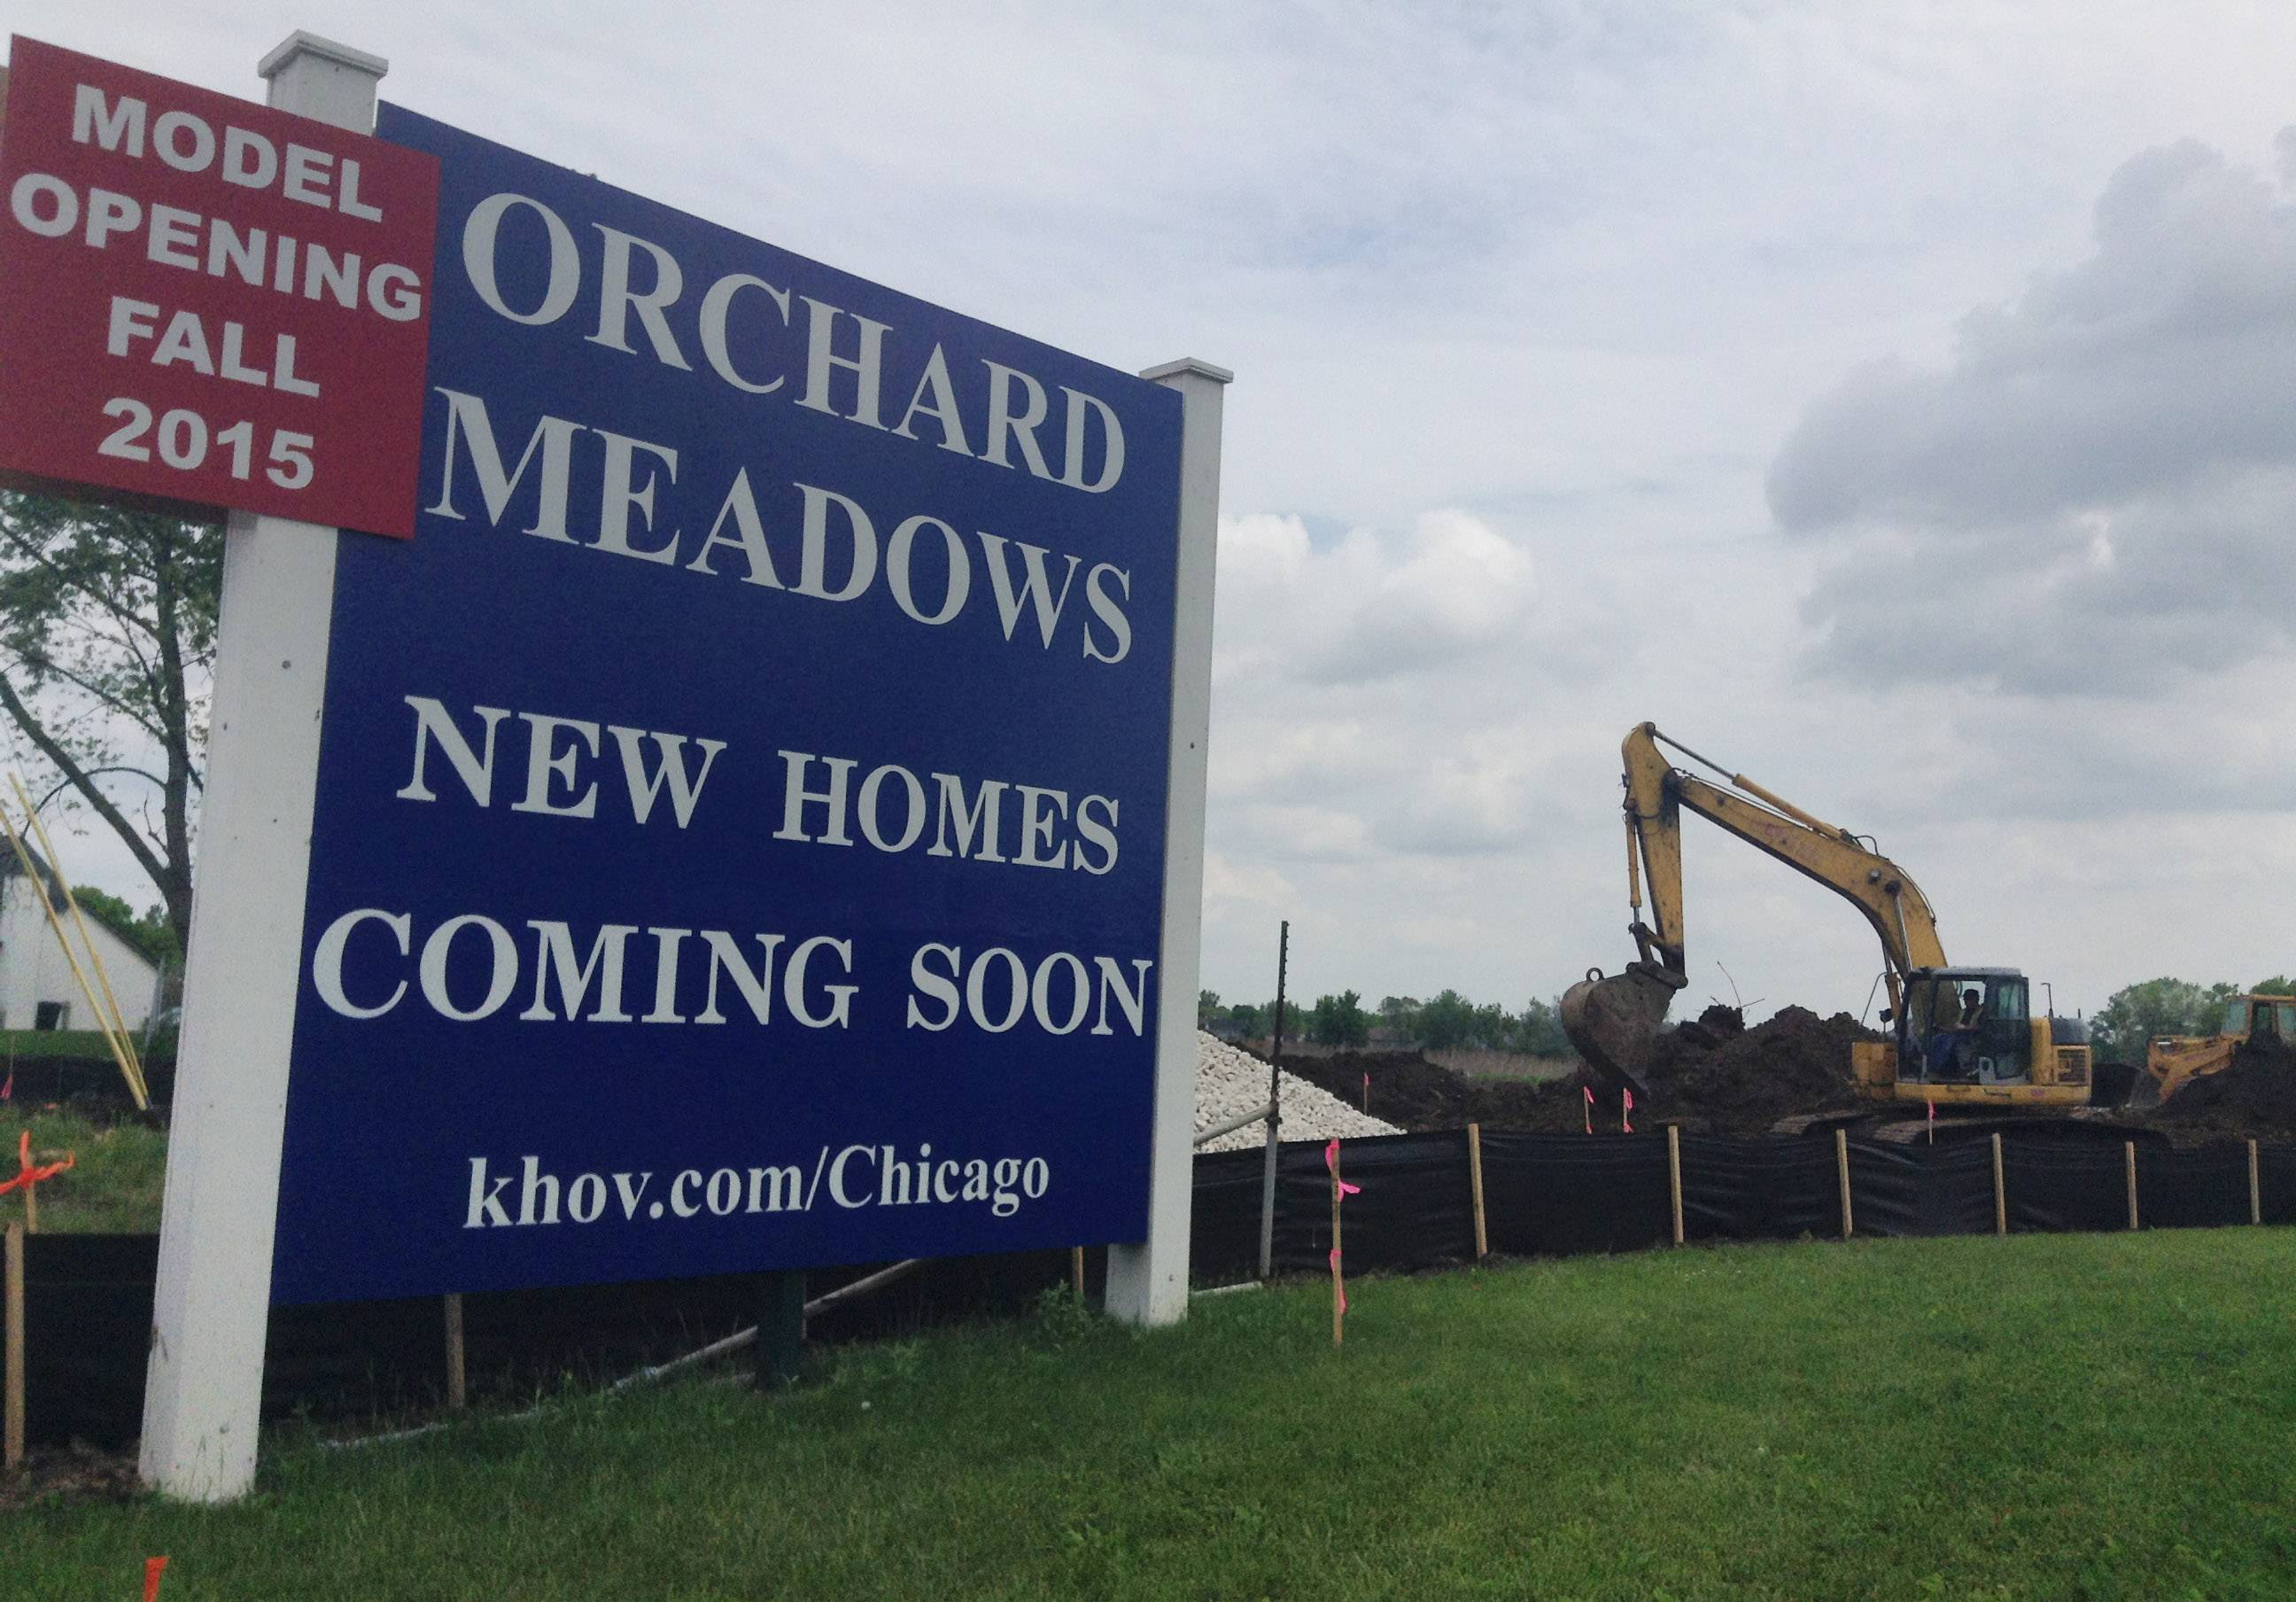 Work starts on subdivision at former Mundelein apple orchard property